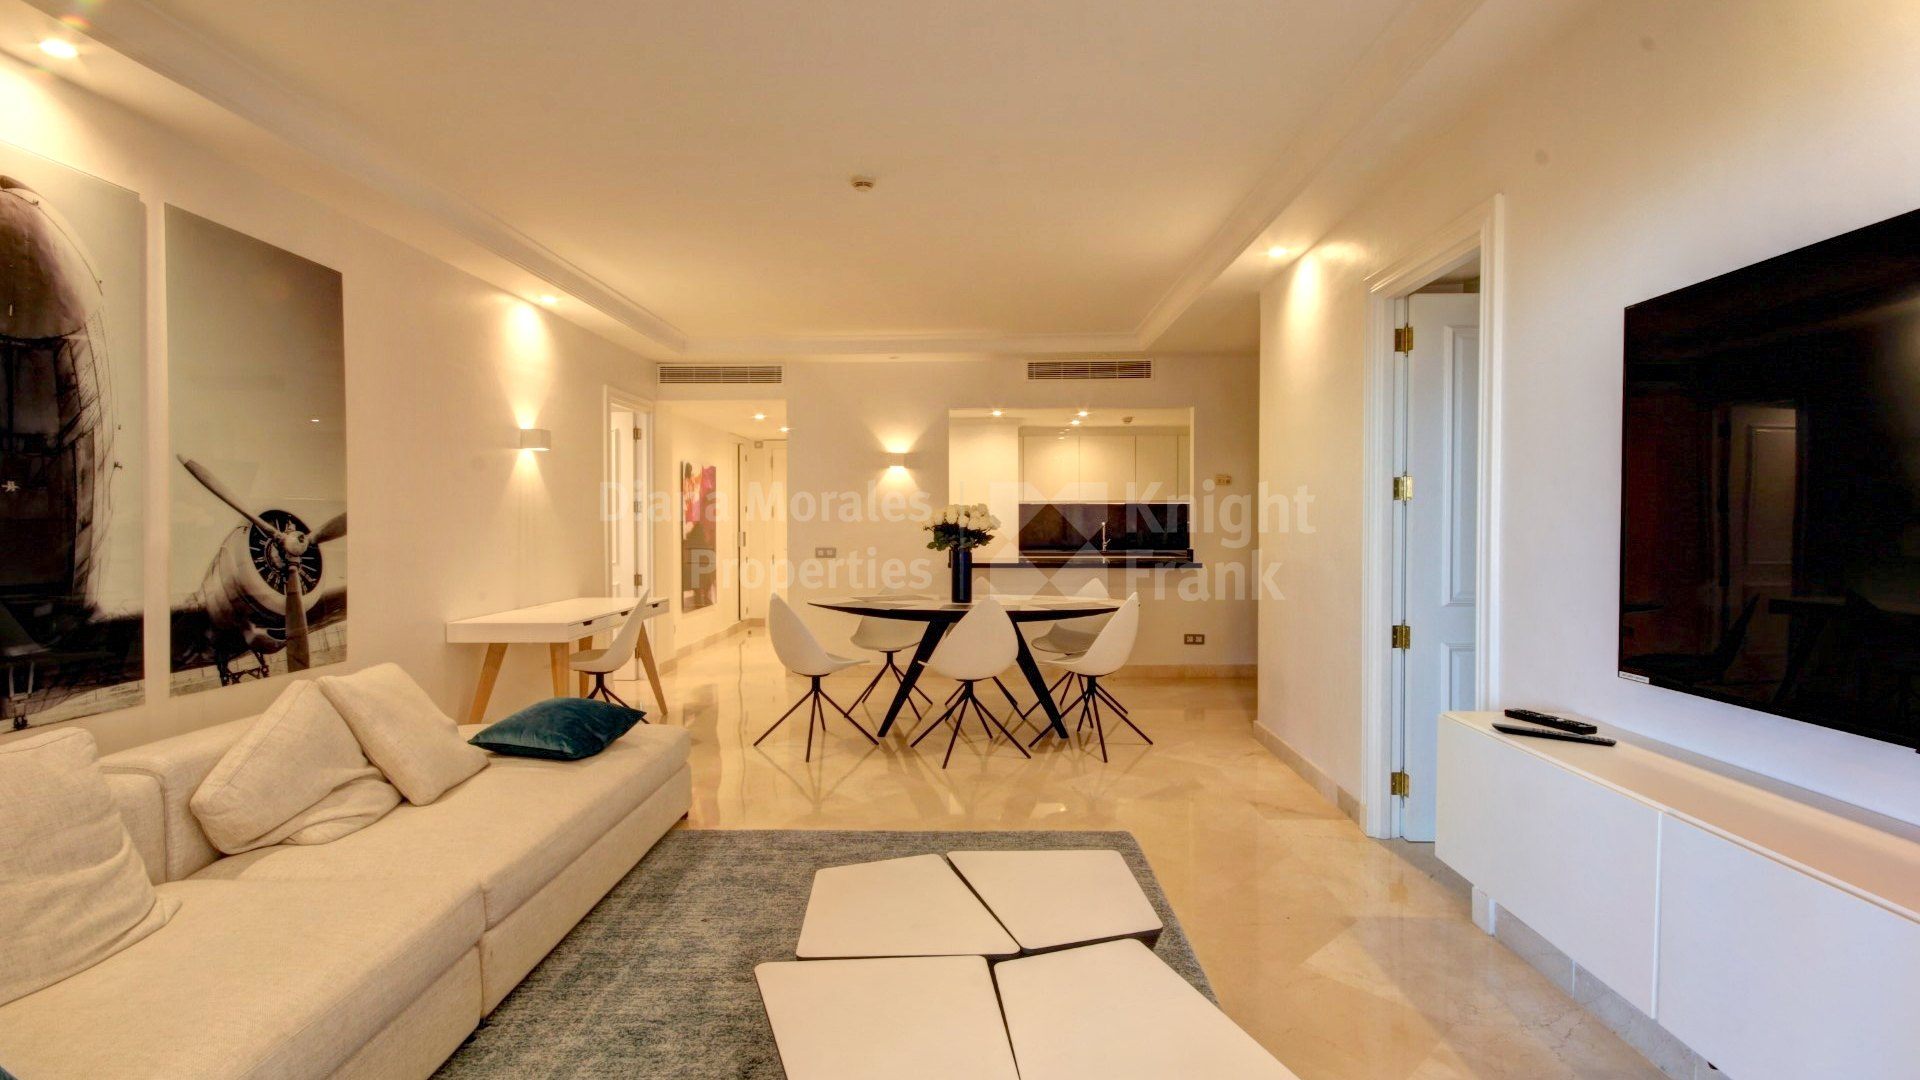 Relax with luxury - Apartment for sale in Kempinski, Estepona